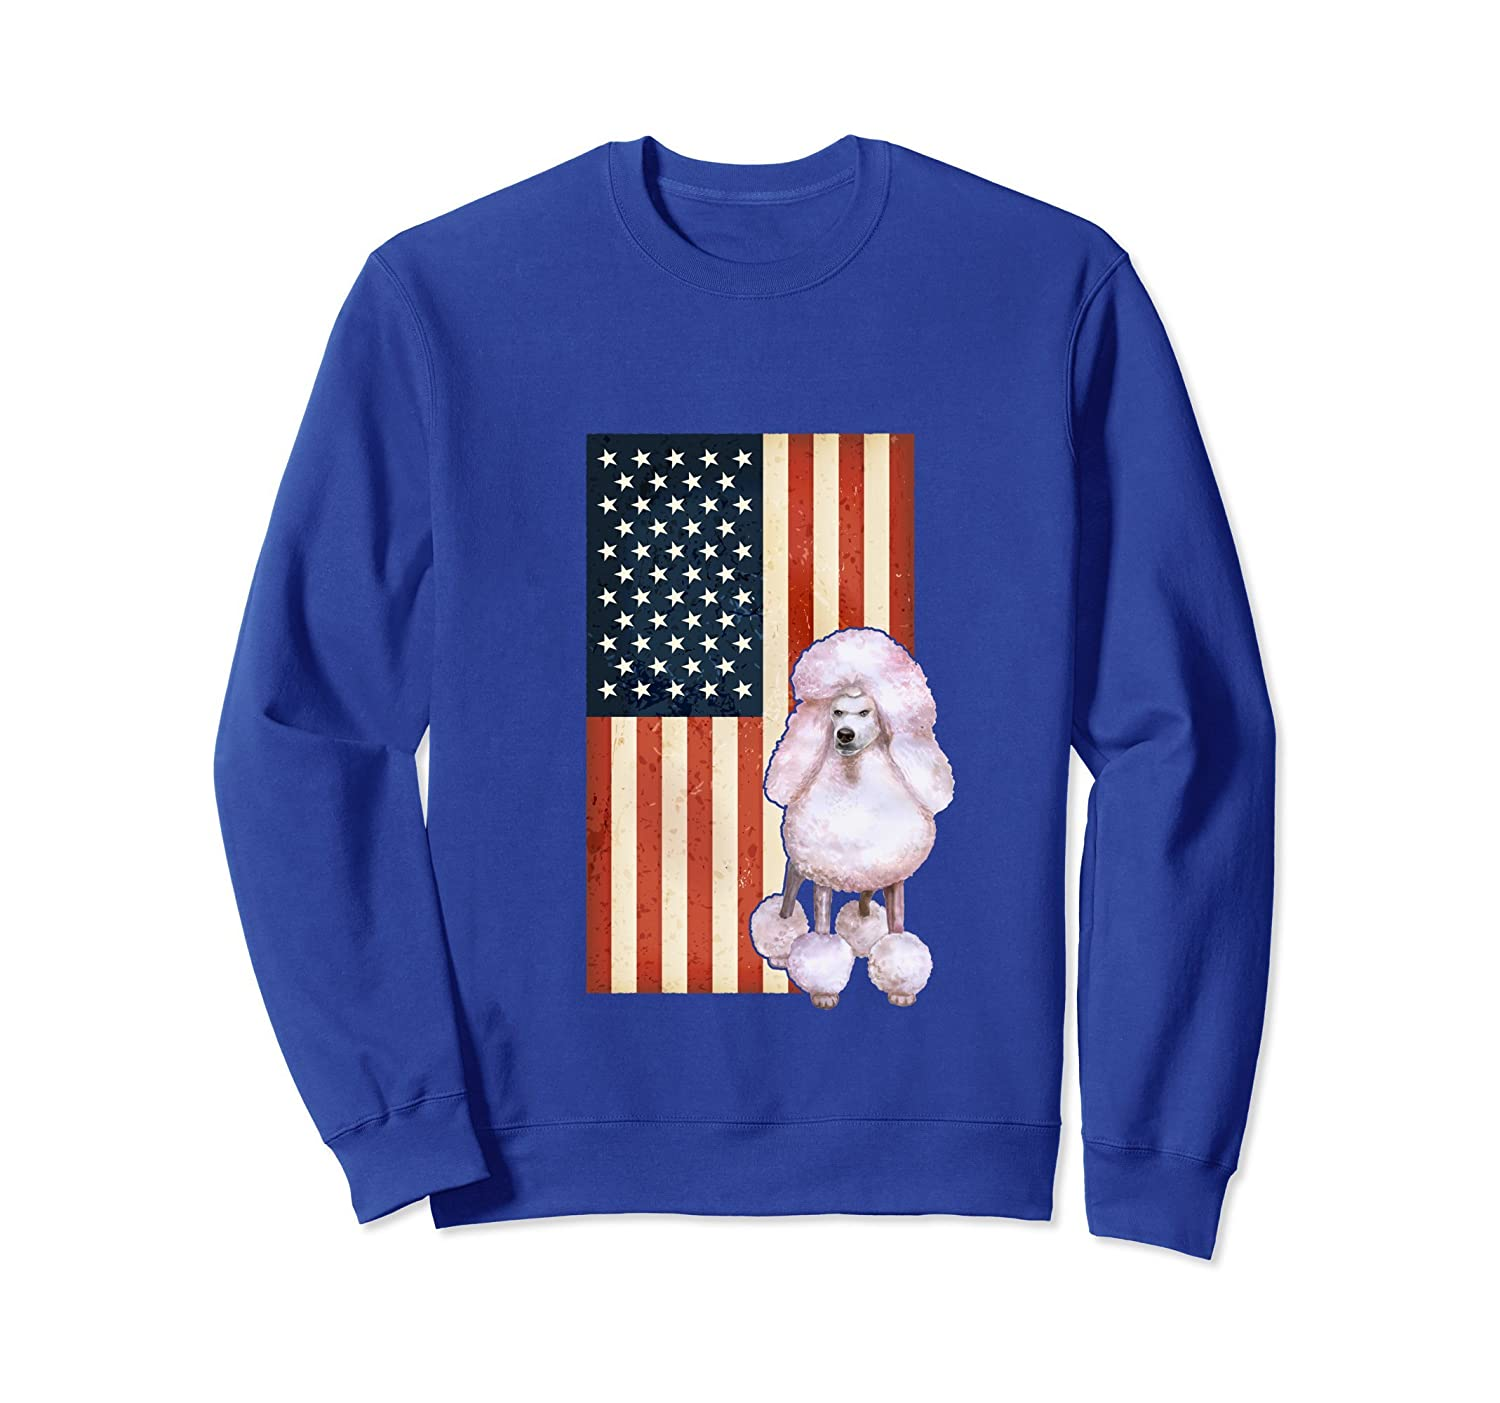 4th of July American Flag Poodle Sweatshirt Men Women Gift-alottee gift